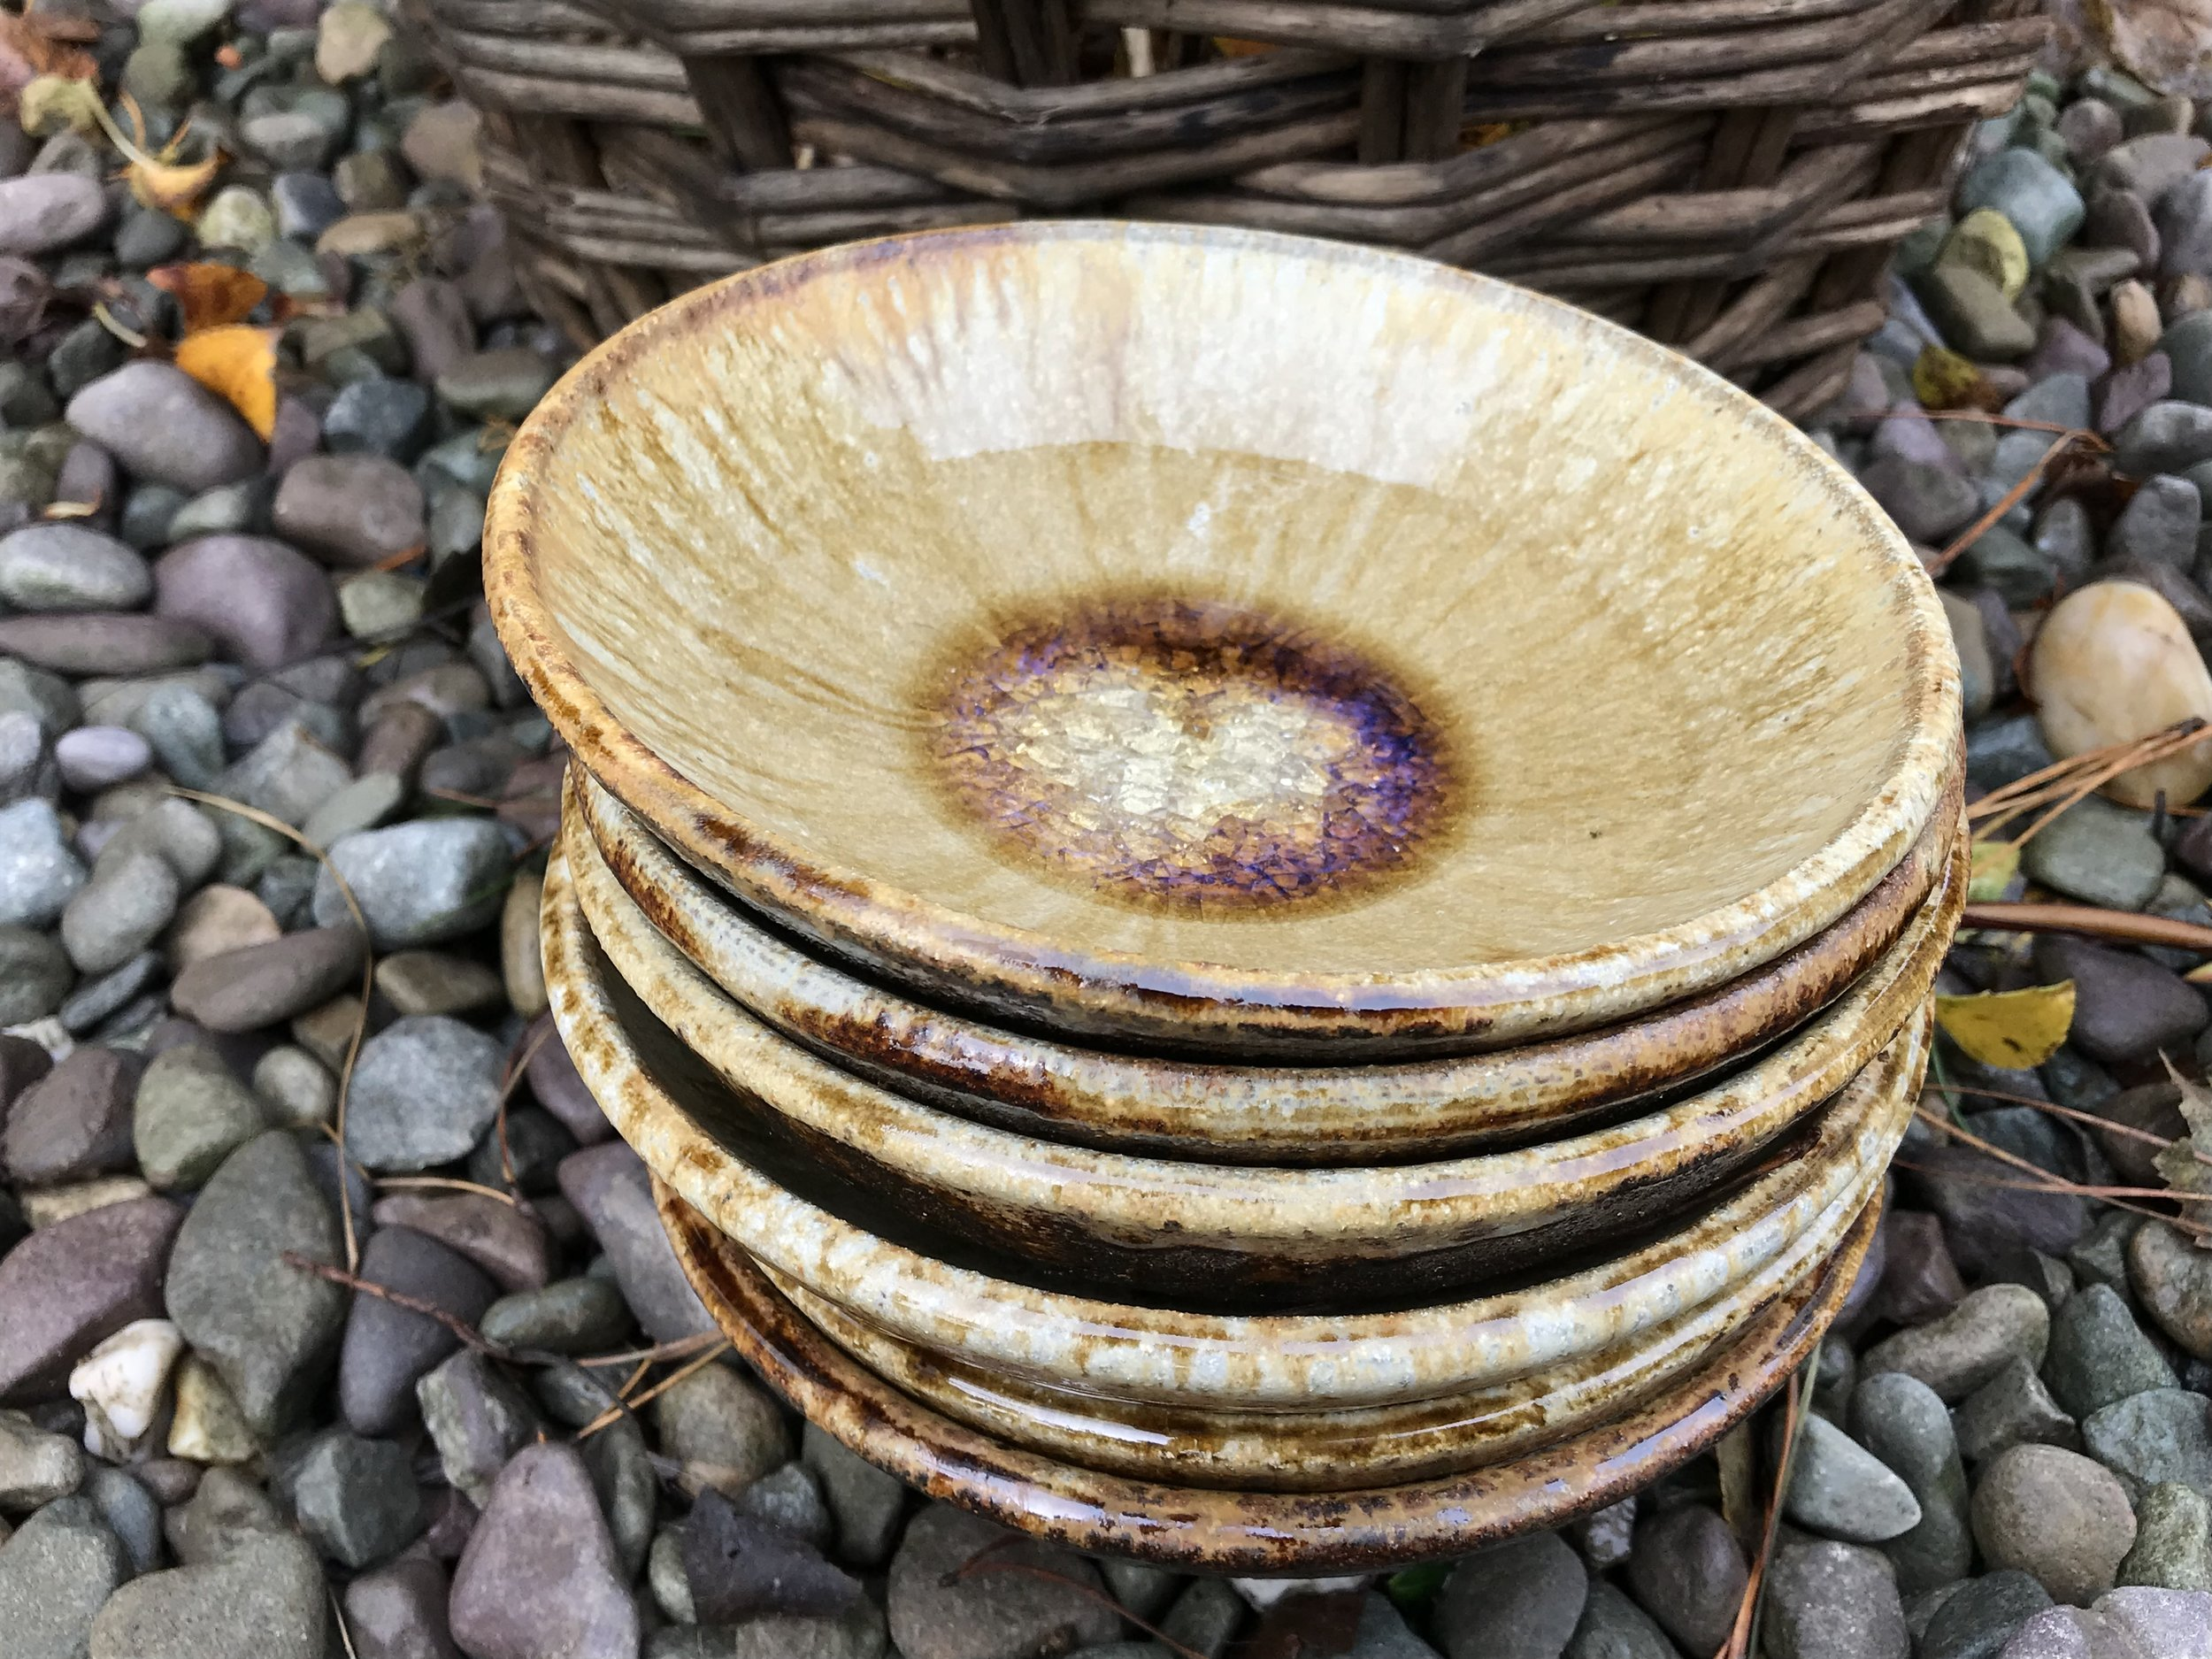 Wood ash was dusting around the rim of these bowls